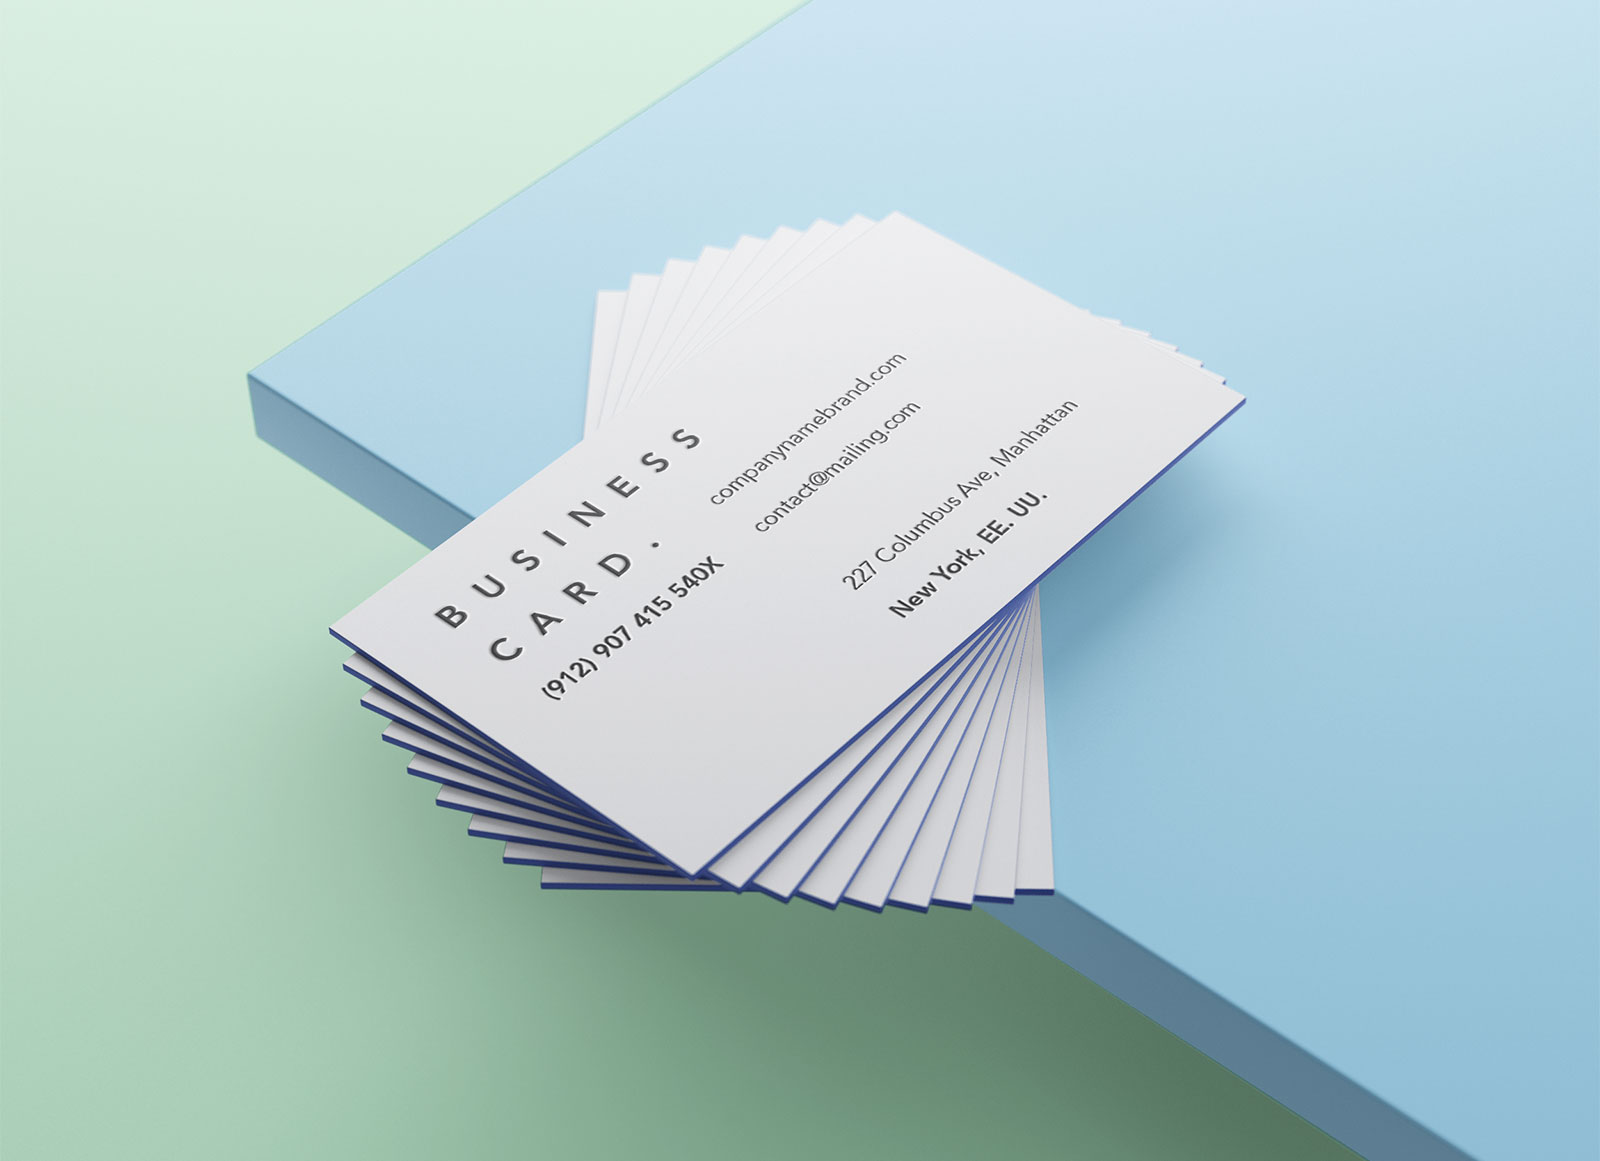 free colored edge business card mockup psd - Colored Edge Business Cards